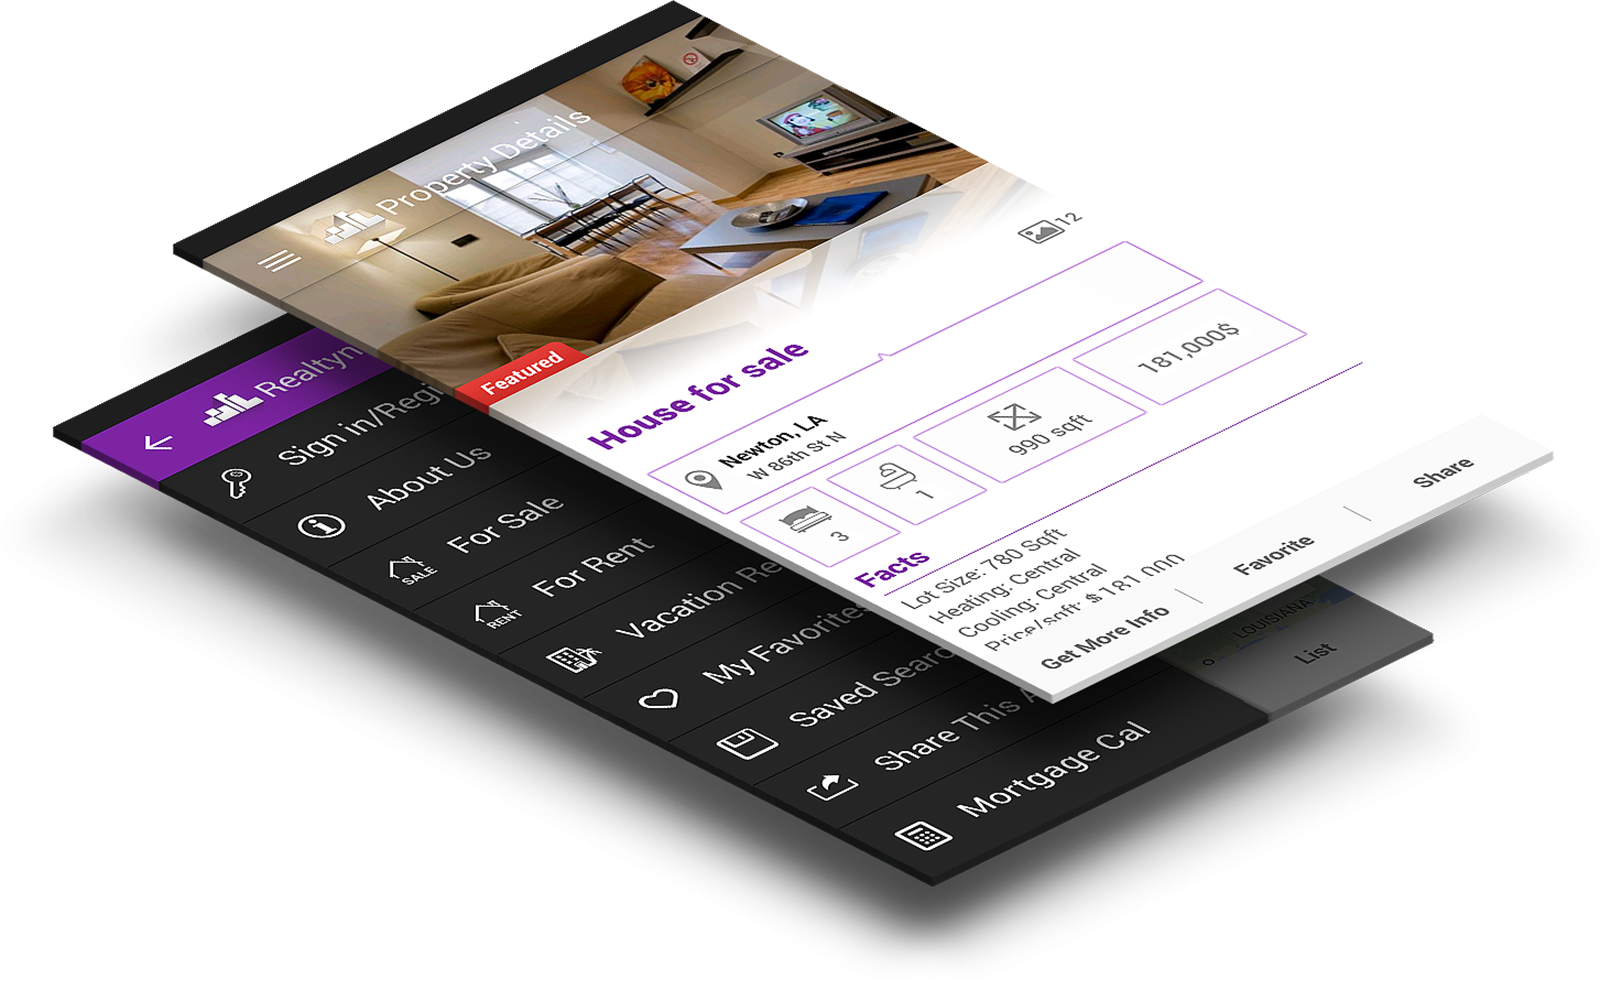 Realtyna Mobile App